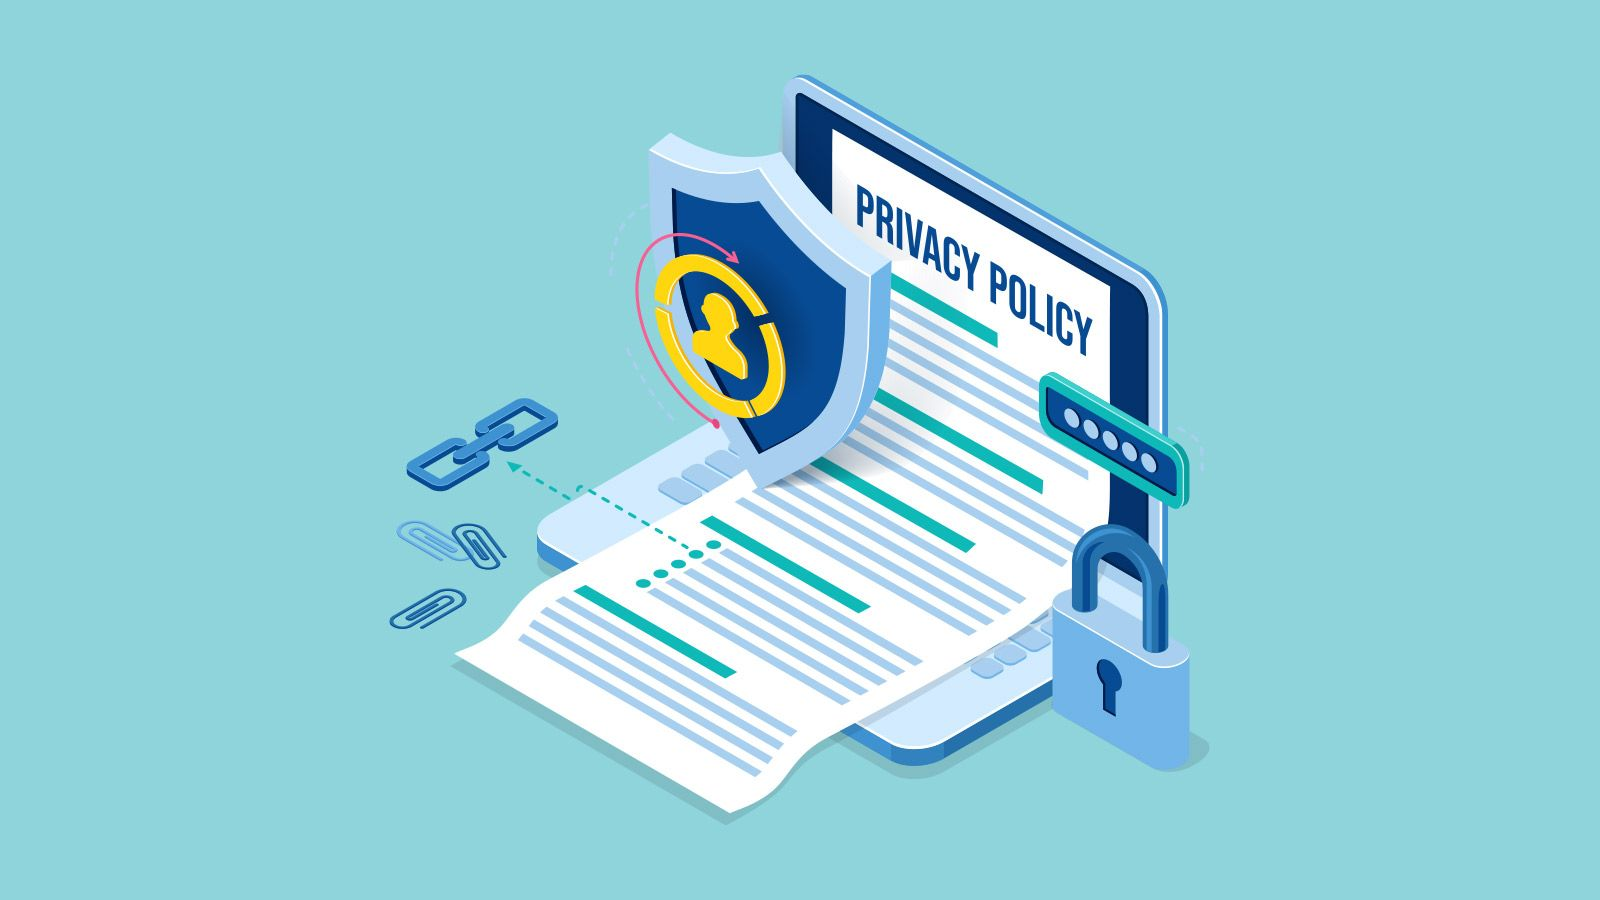 Your eCommerce business needs a Website Privacy Policy